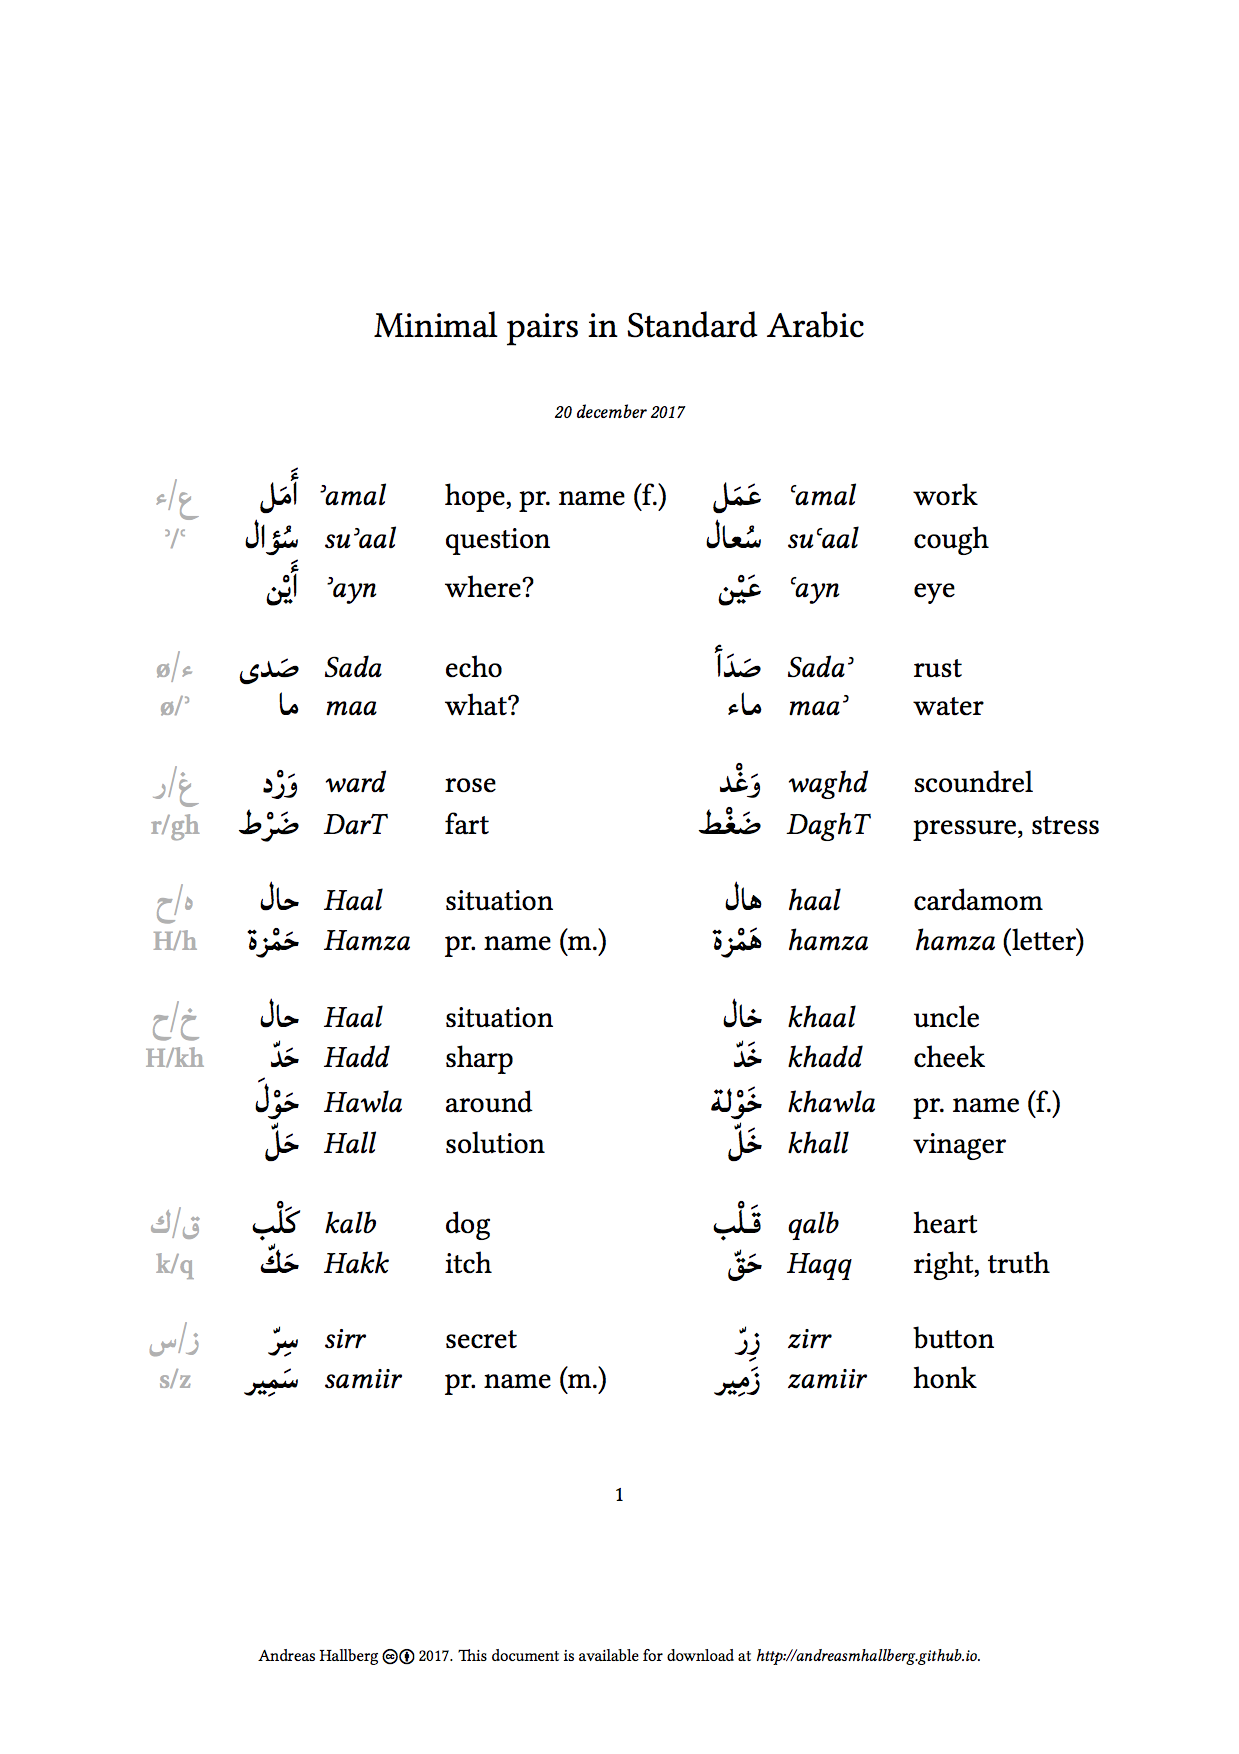 Documents – Uppercase Alif – Andreas Hallberg's notes on Arabic